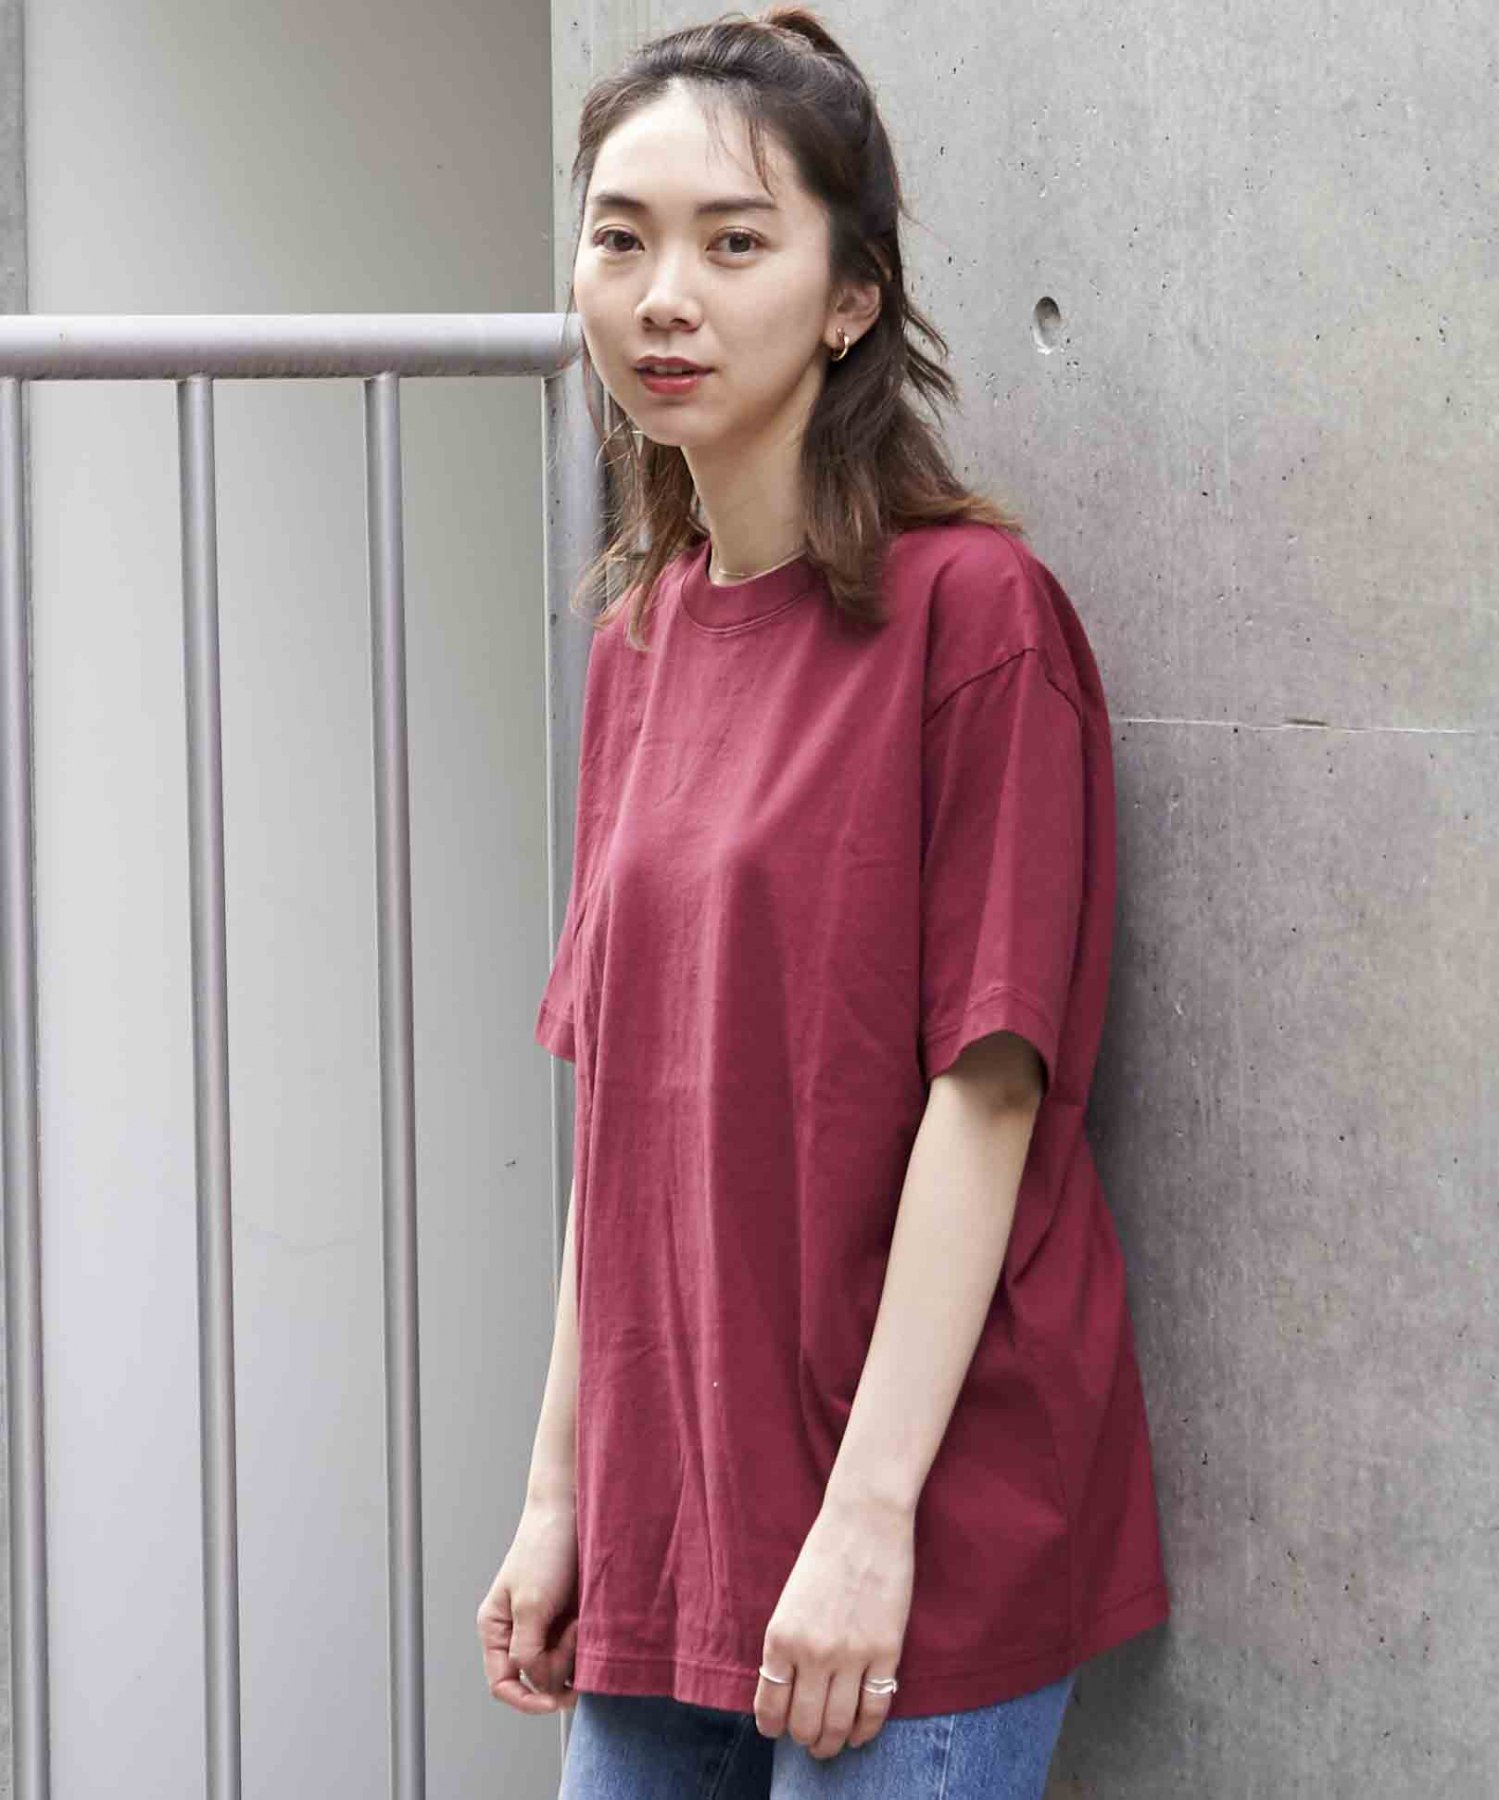 <img class='new_mark_img1' src='https://img.shop-pro.jp/img/new/icons15.gif' style='border:none;display:inline;margin:0px;padding:0px;width:auto;' />【REBIRTH PROJECT】SOUL COTTON T-shirt  BGD